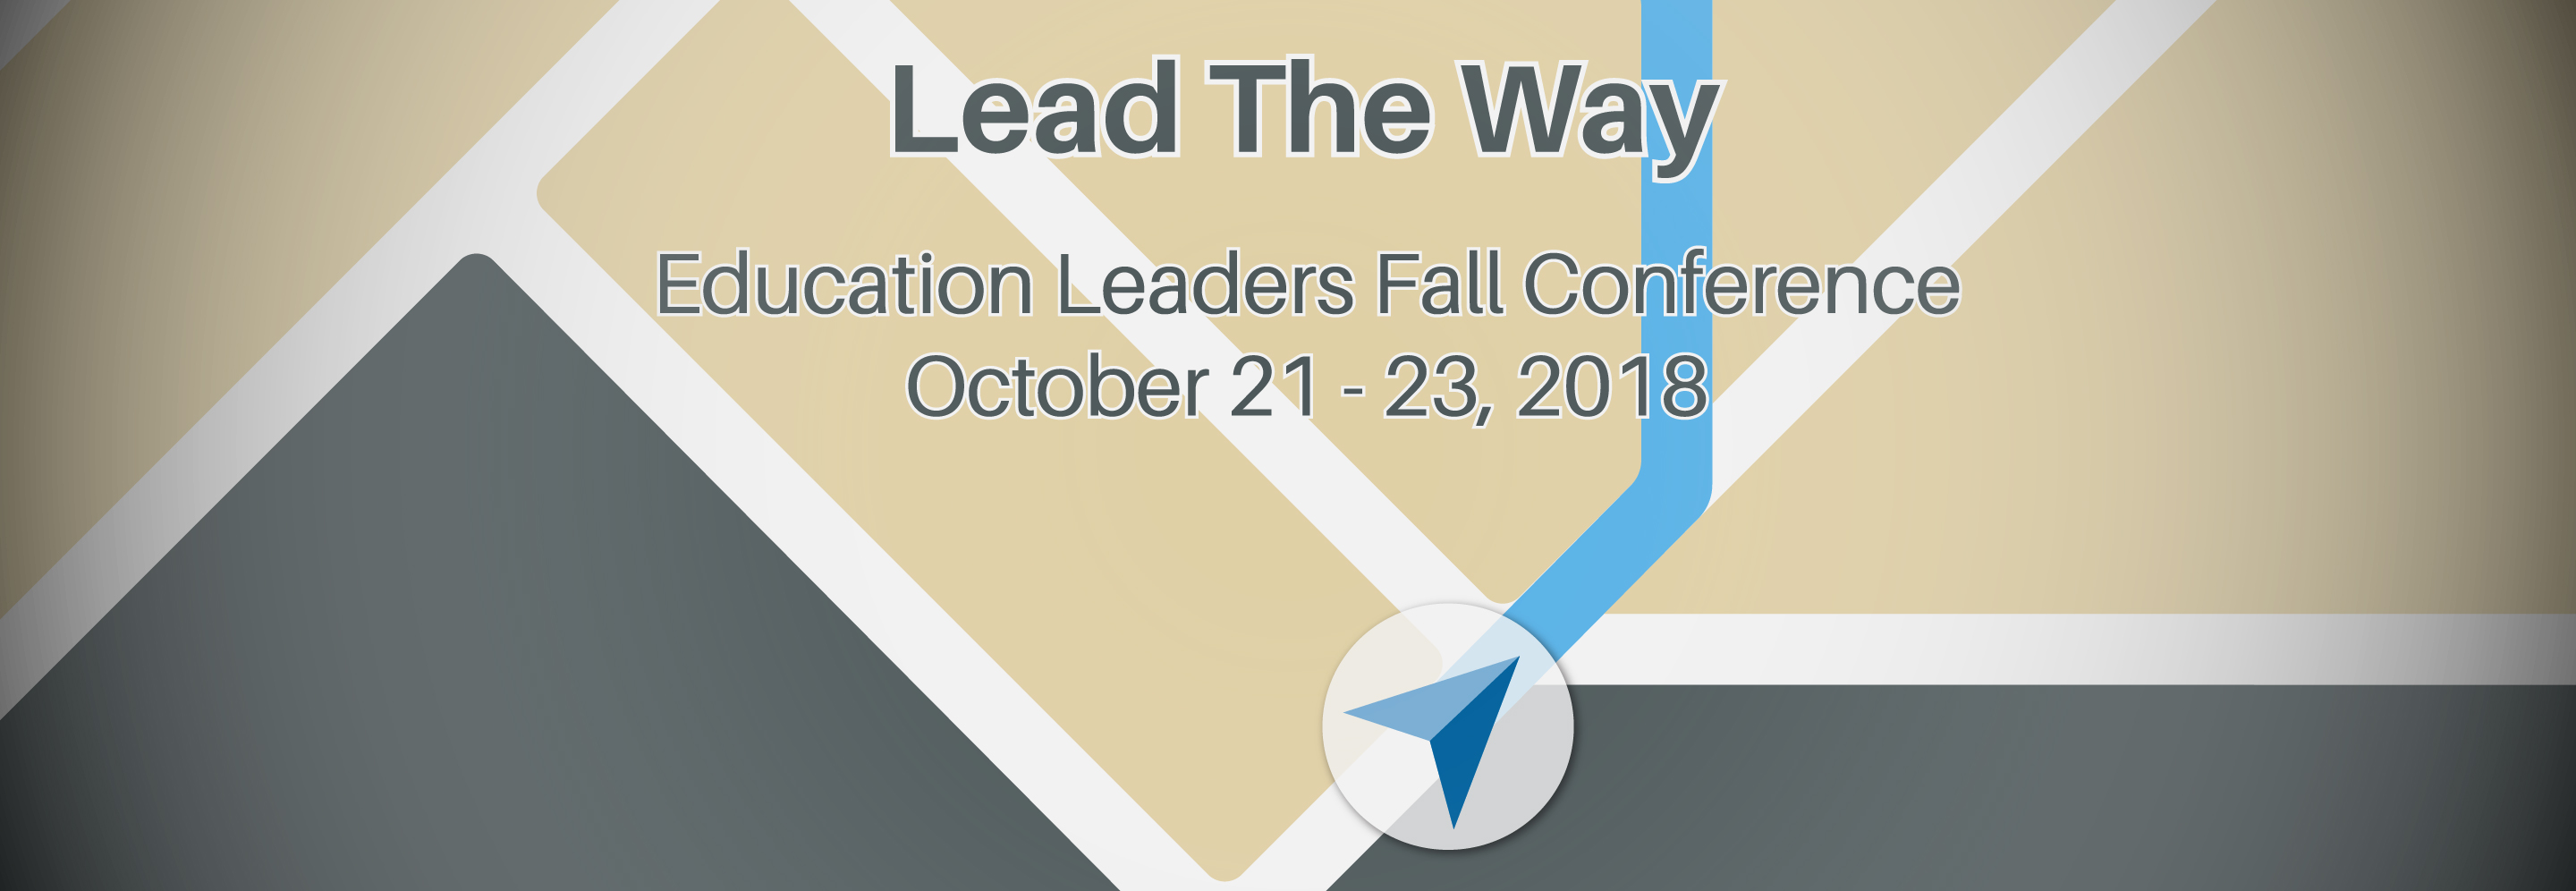 Attend Fall Conference